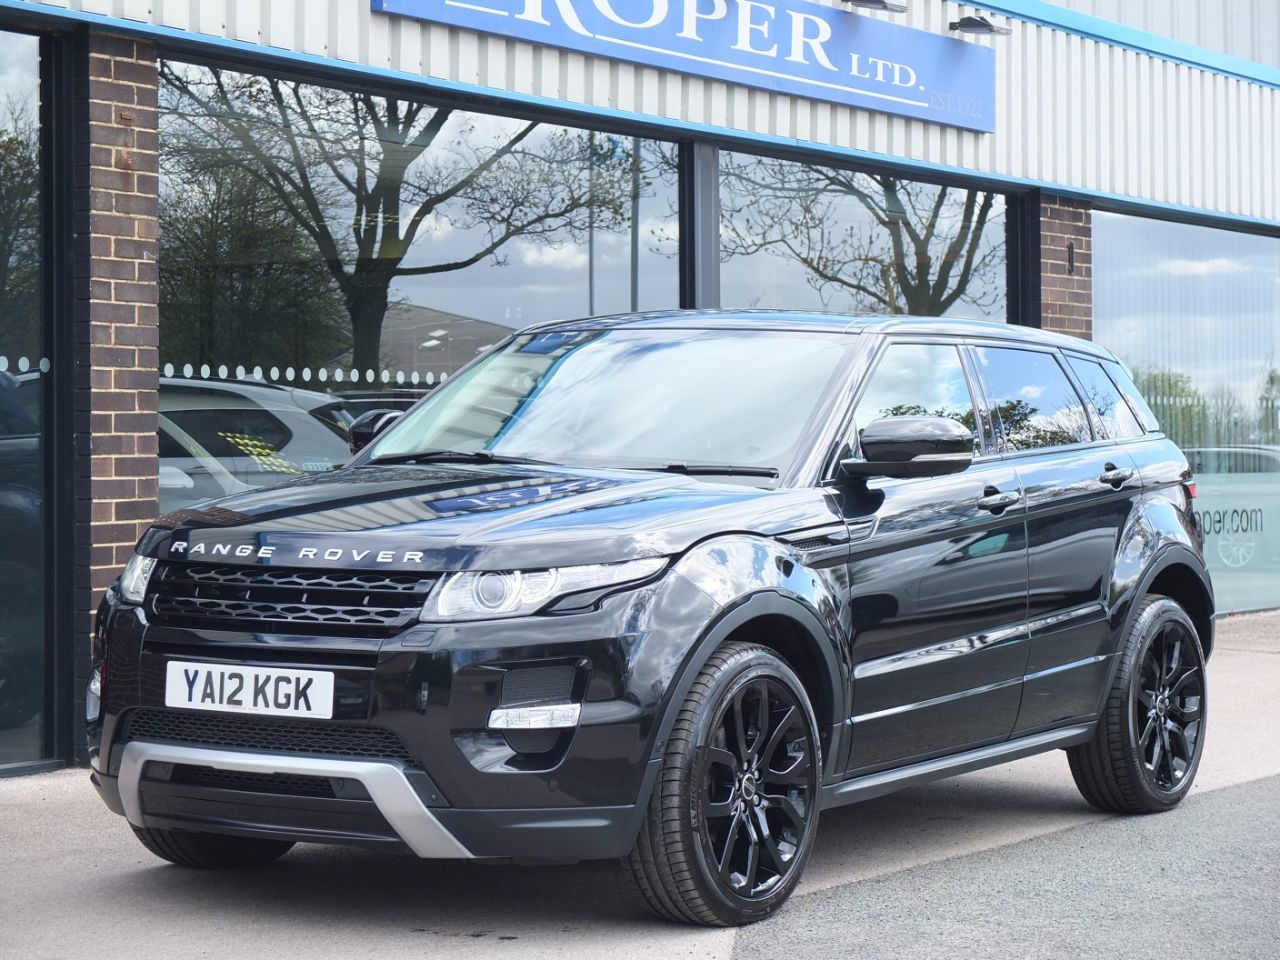 Land Rover Range Rover Evoque 2.2 SD4 Dynamic 5 door Auto [Lux Pack] Estate Diesel Santorini Black MetallicLand Rover Range Rover Evoque 2.2 SD4 Dynamic 5 door Auto [Lux Pack] Estate Diesel Santorini Black Metallic at fa Roper Ltd Bradford